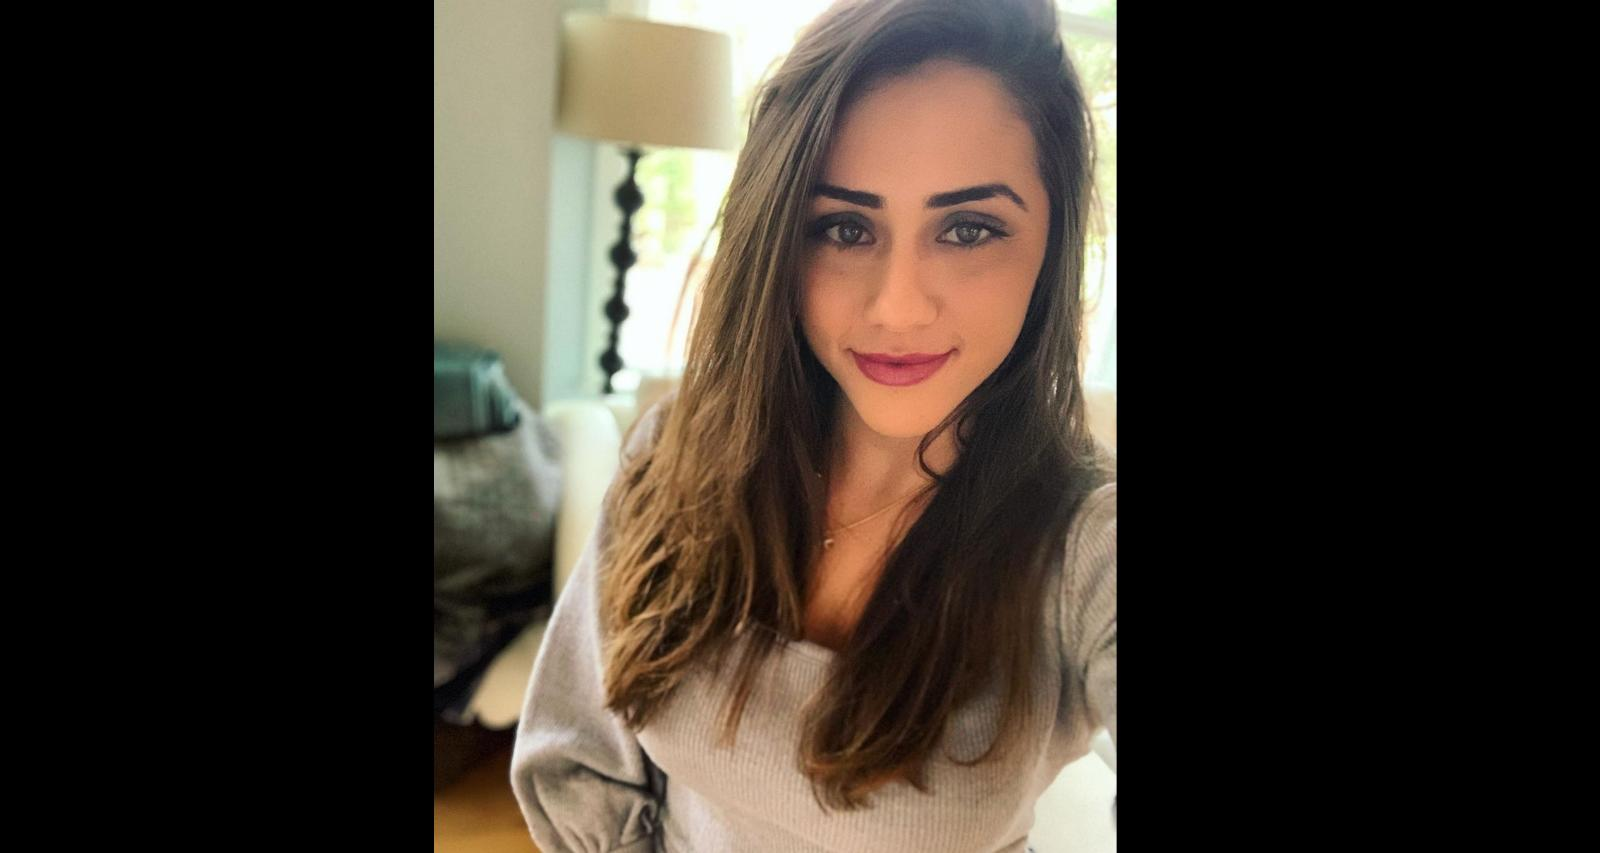 Cristina Bayardelle Wiki, Age, Mother, Education, Crossfit, athlete and Facts About Madison Cawthorn's Fiancée